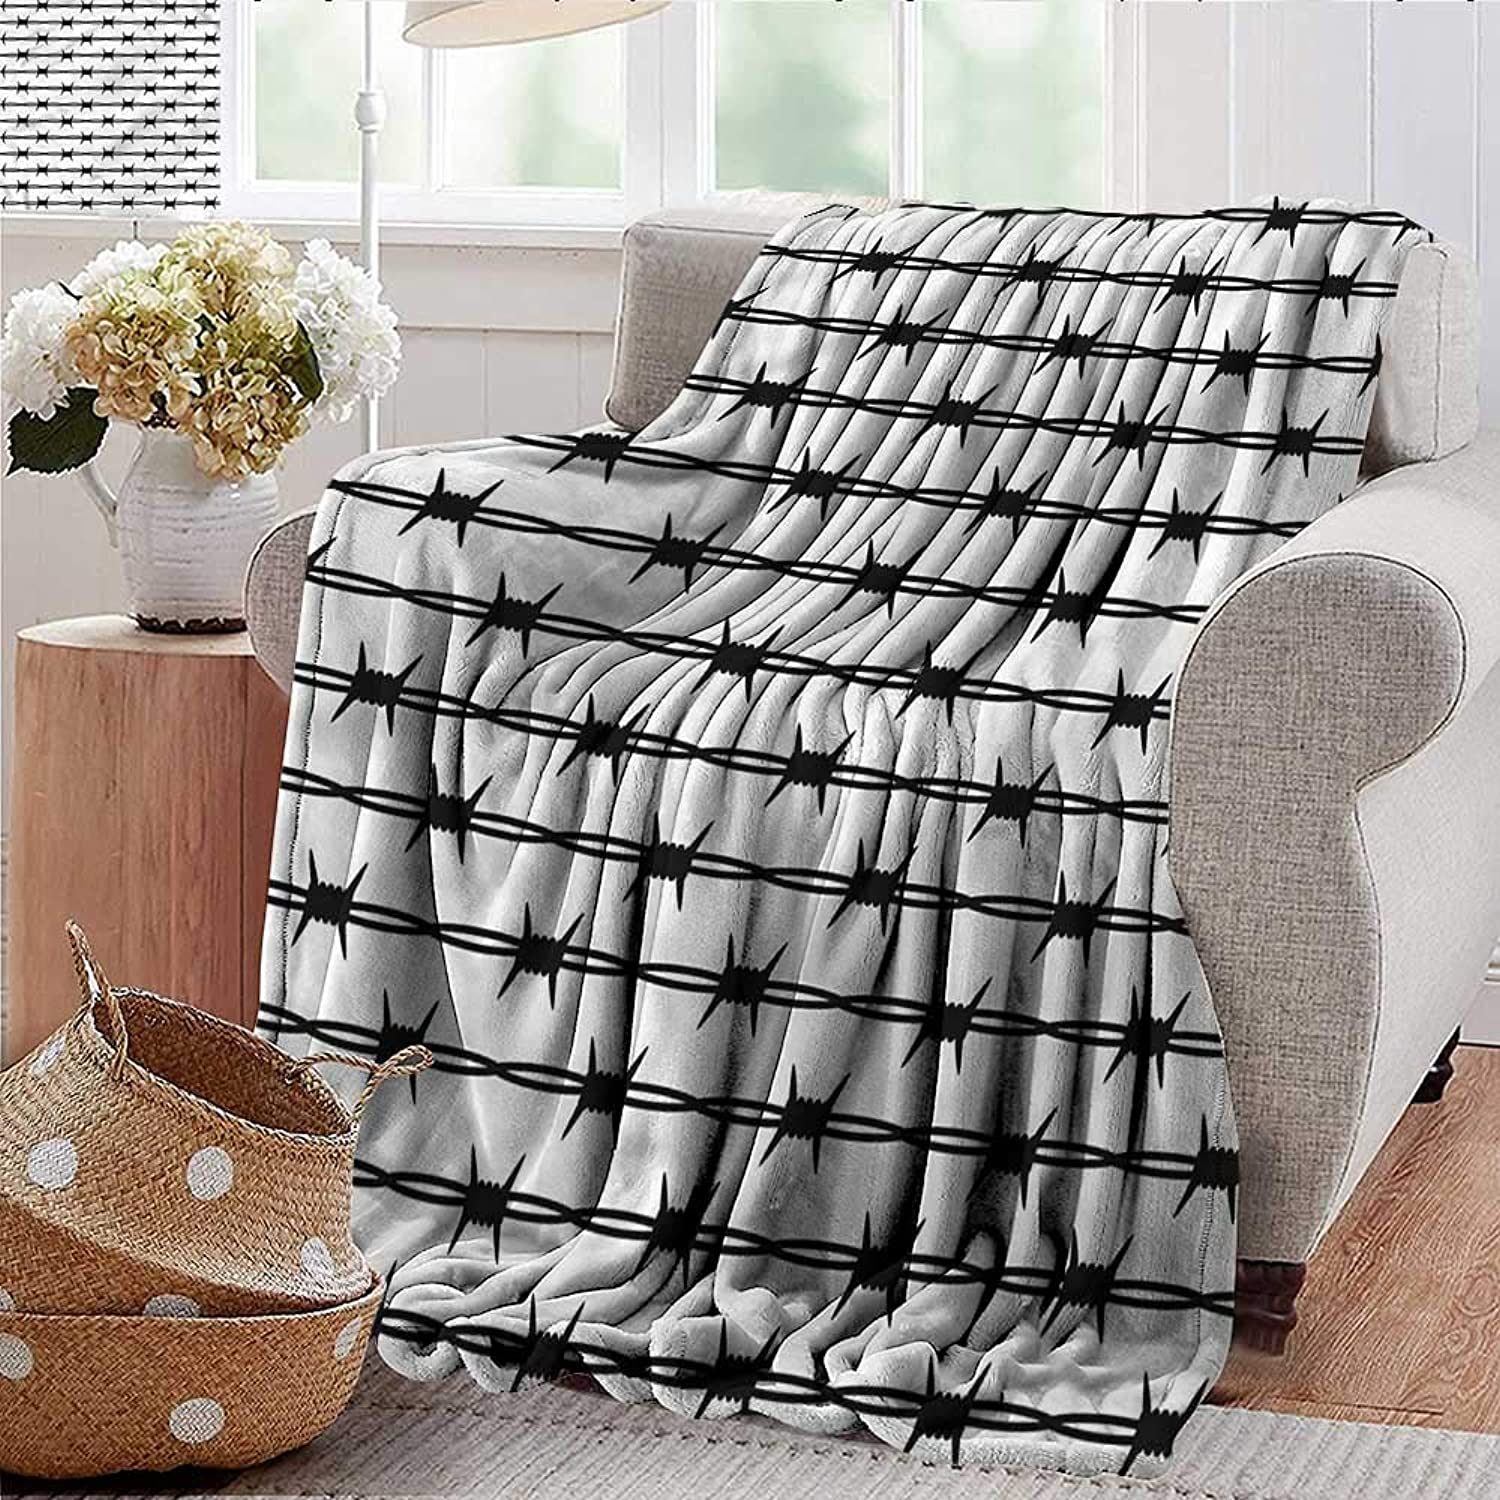 Xaviera Doherty Summer Blanket Barbed Wire,Fence Predection Design Weighted Blanket for Adults Kids, Better Deeper Sleep 35 x60